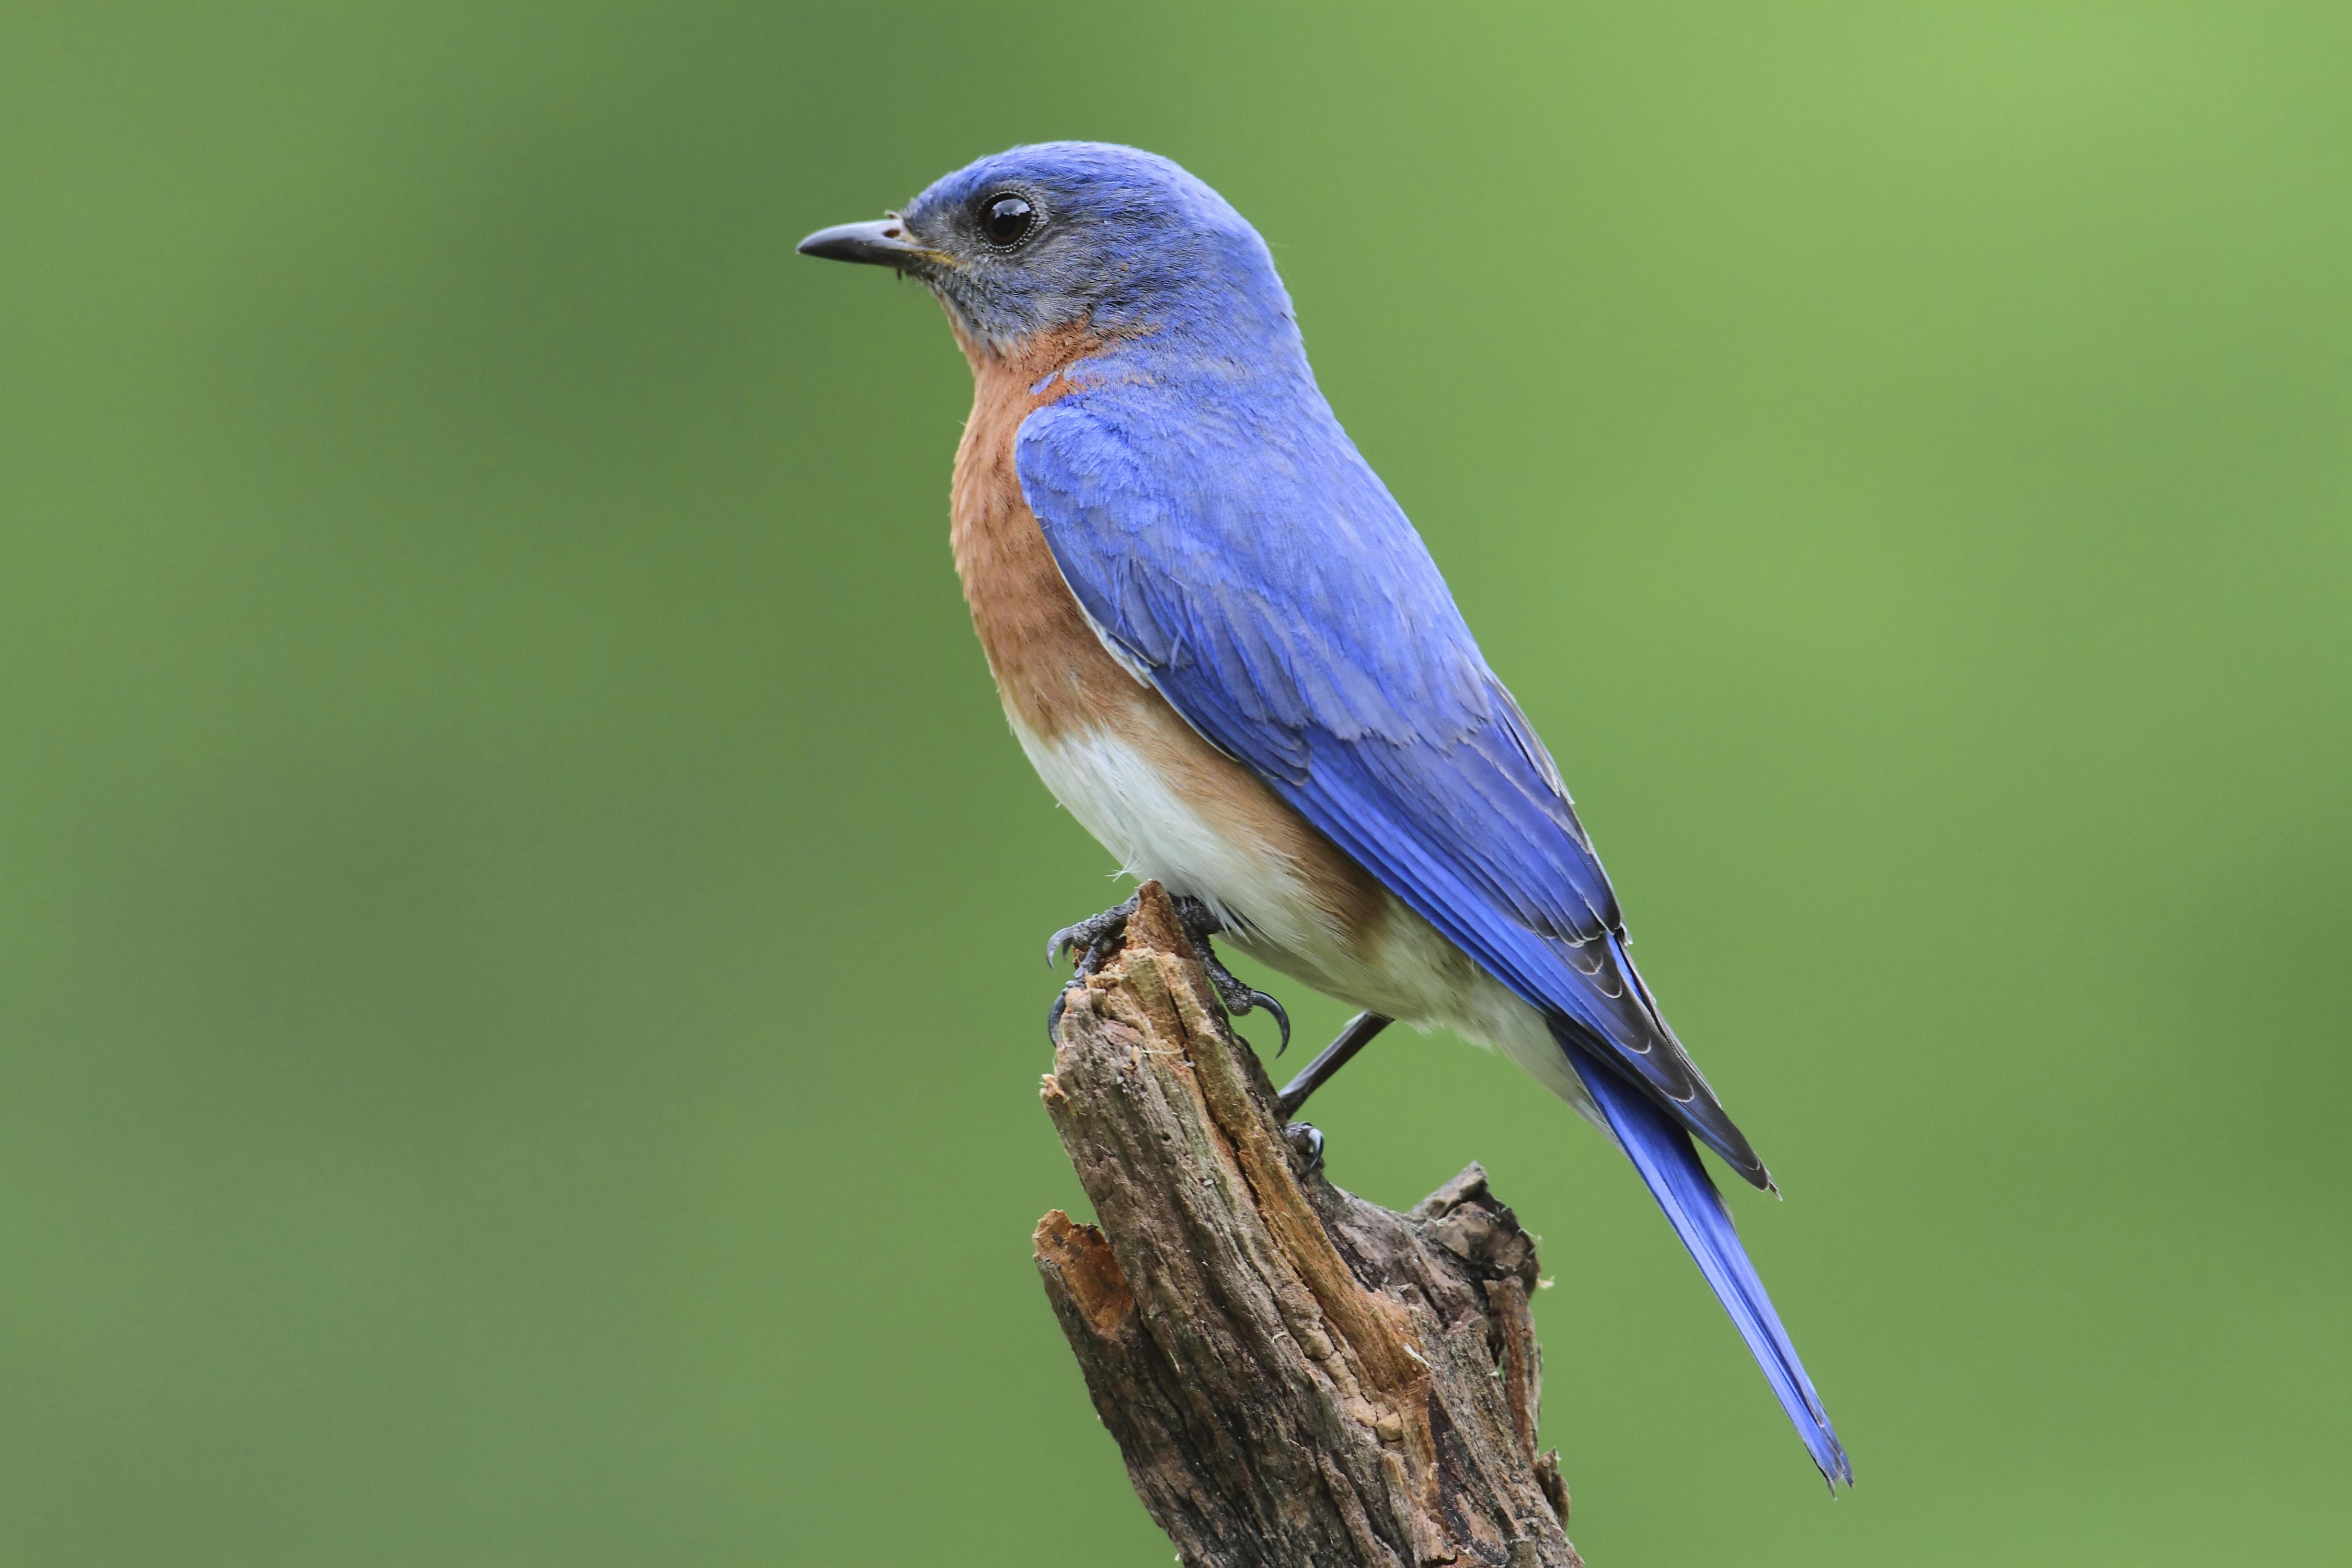 Blue bird - photo#25